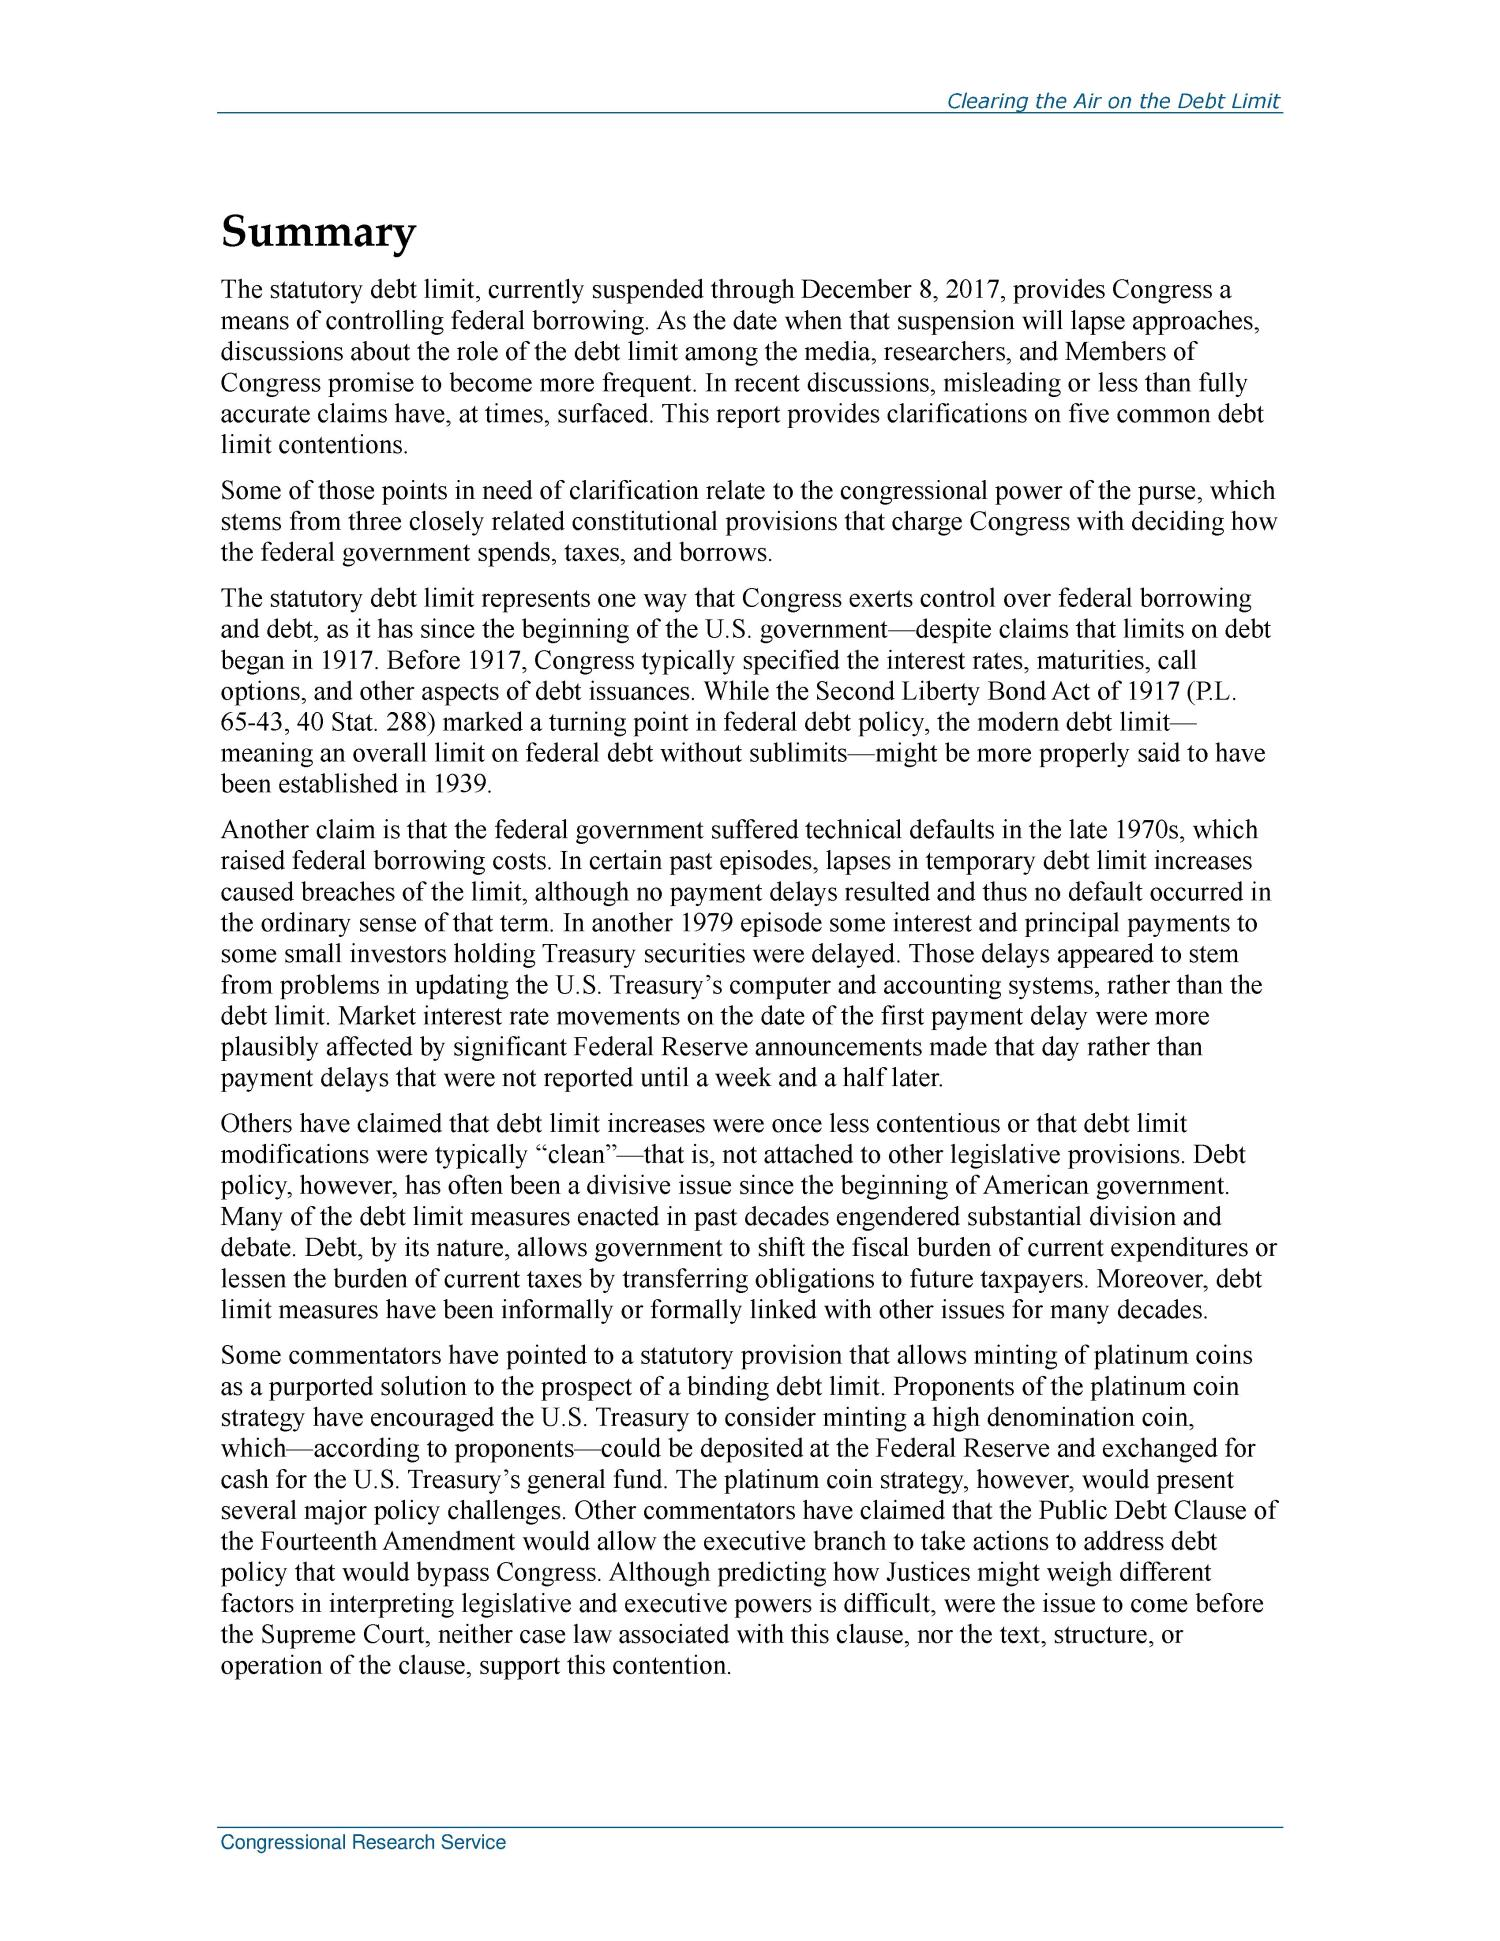 Clearing the Air on the Debt Limit                                                                                                      [Sequence #]: 2 of 15